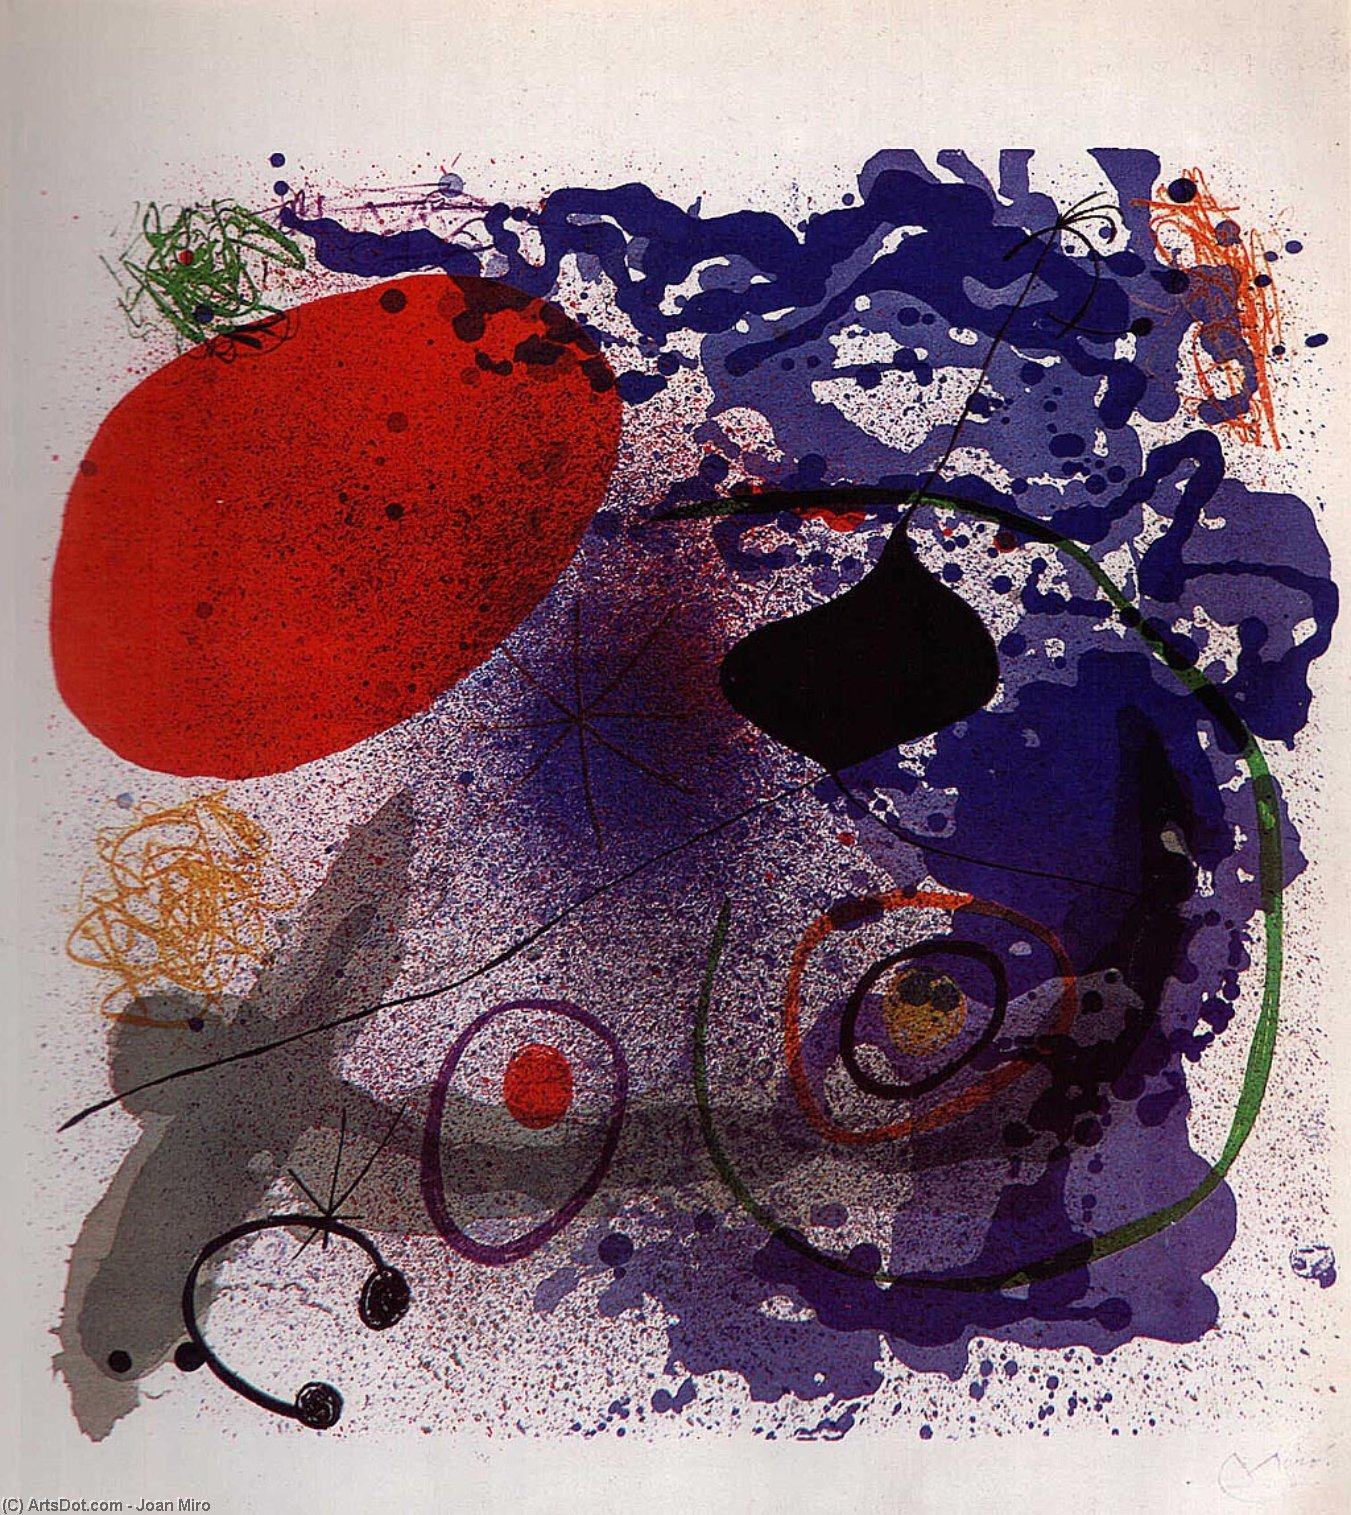 Batement ICH ICH, 1968 von Joan Miro (1893-1937, Spain)